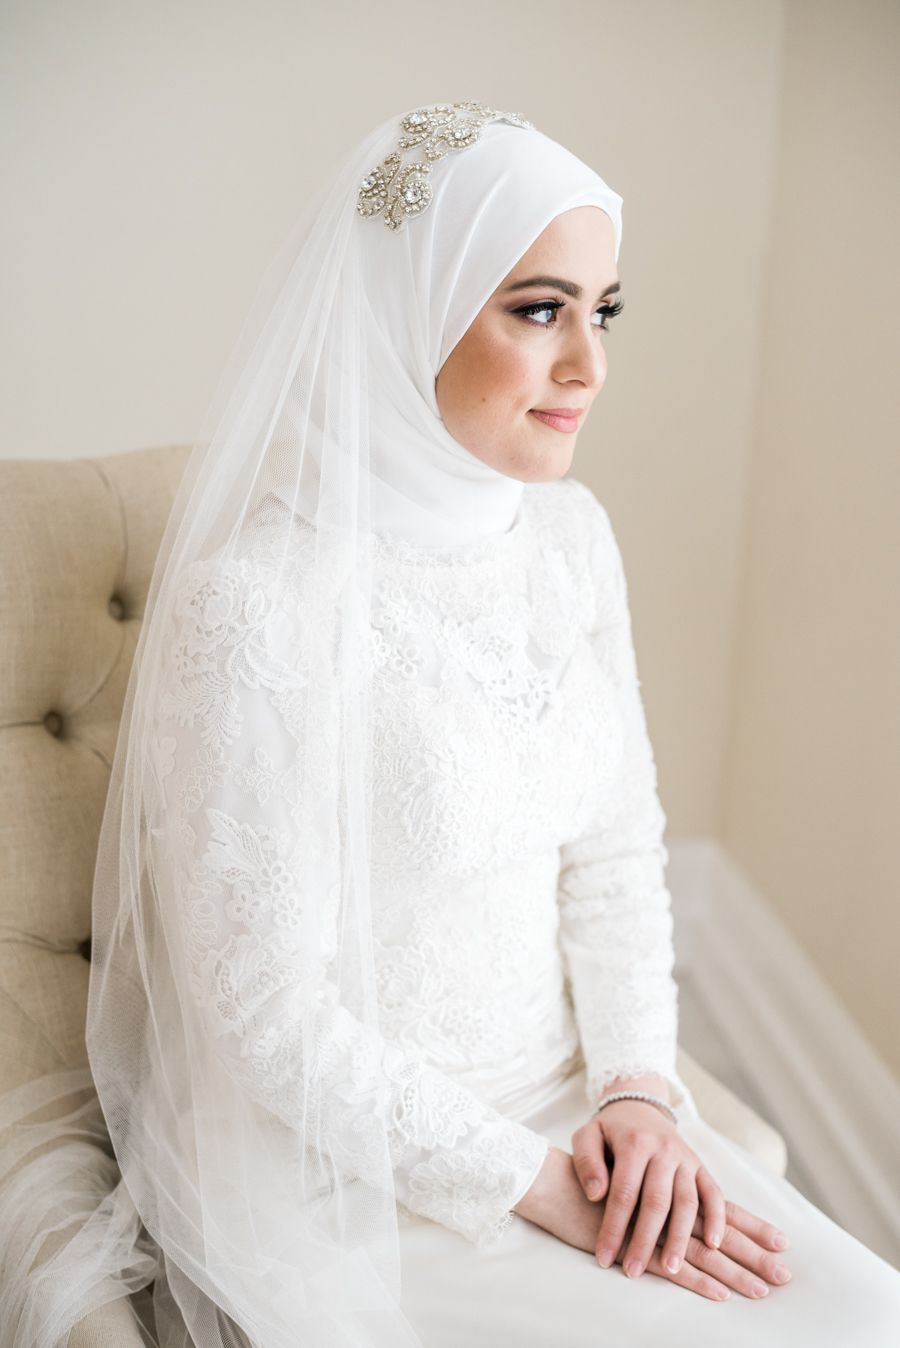 Intimate Rooftop Ceremony Grand Reception Magic Muslimah Wedding Muslimah Wedding Dress Wedding Dresses [ 1348 x 900 Pixel ]